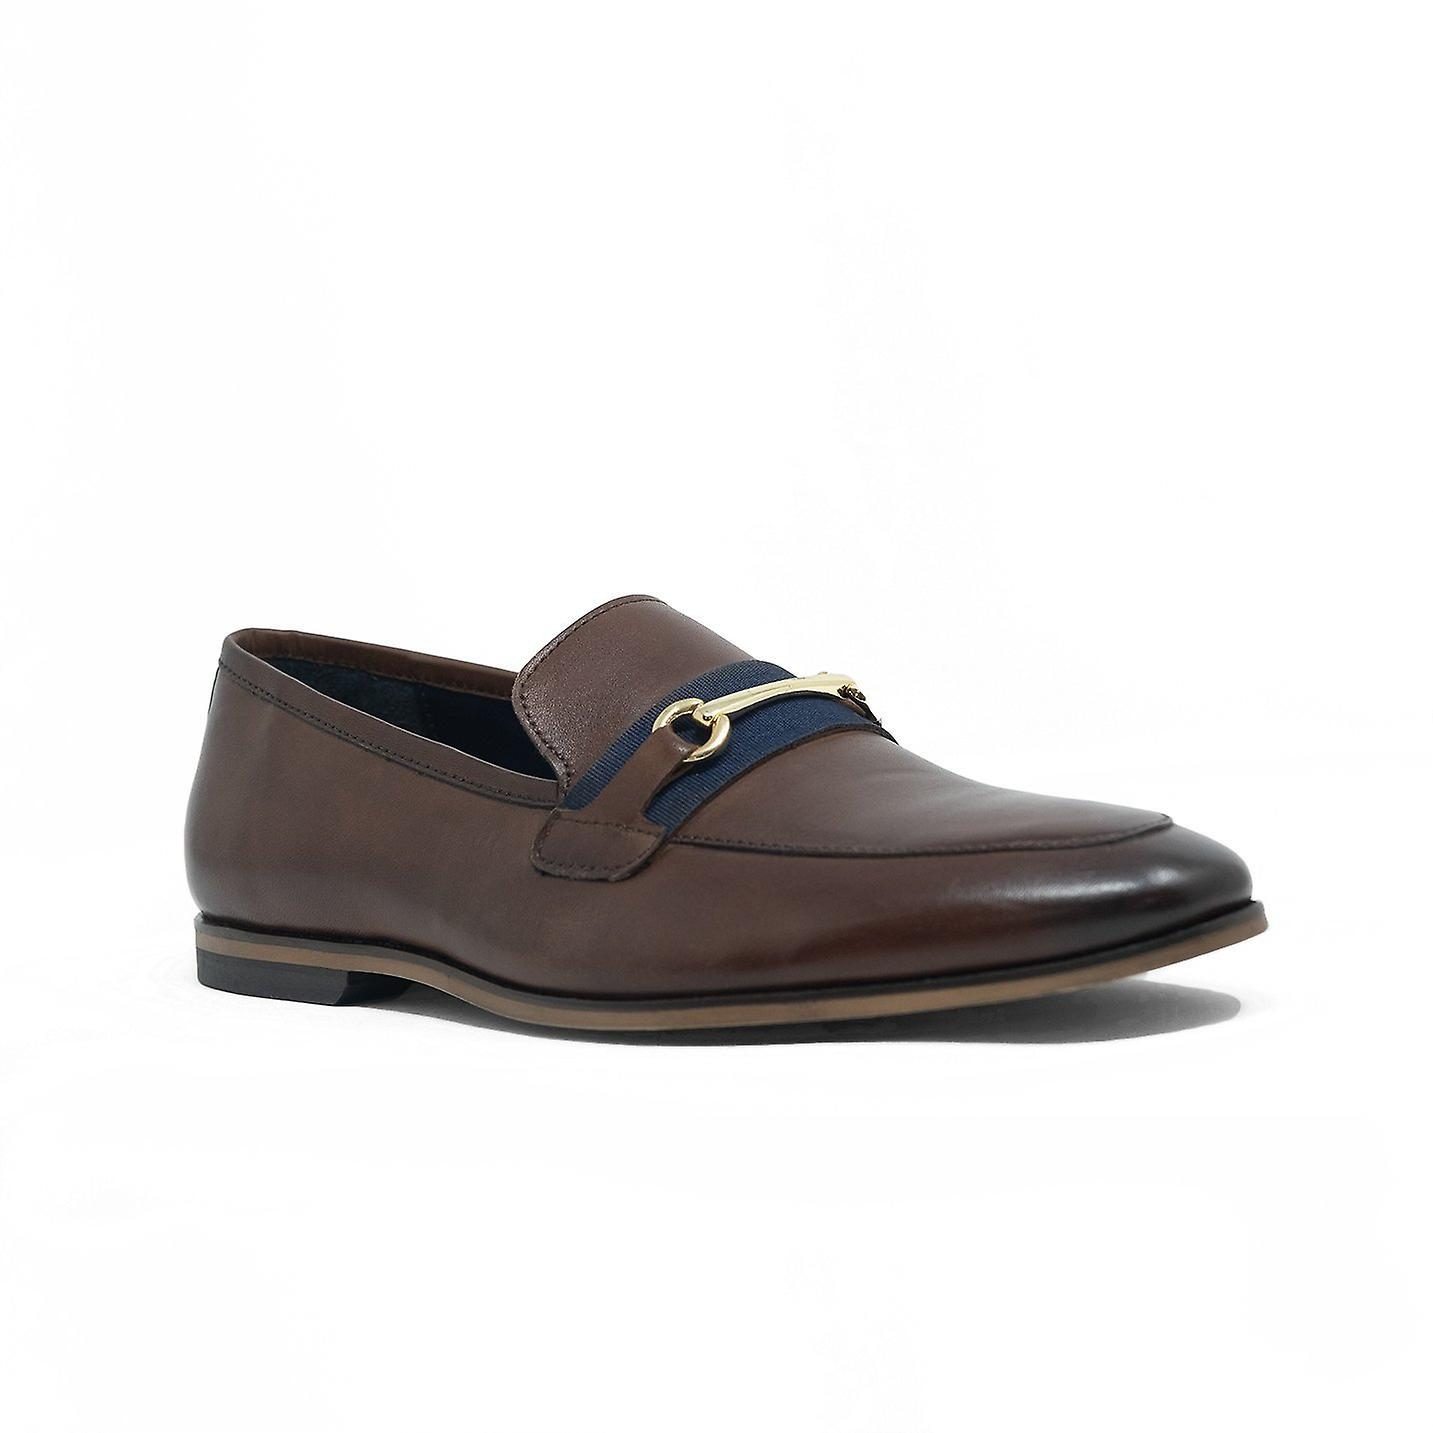 Walk london raphael bar loafers in brown leather